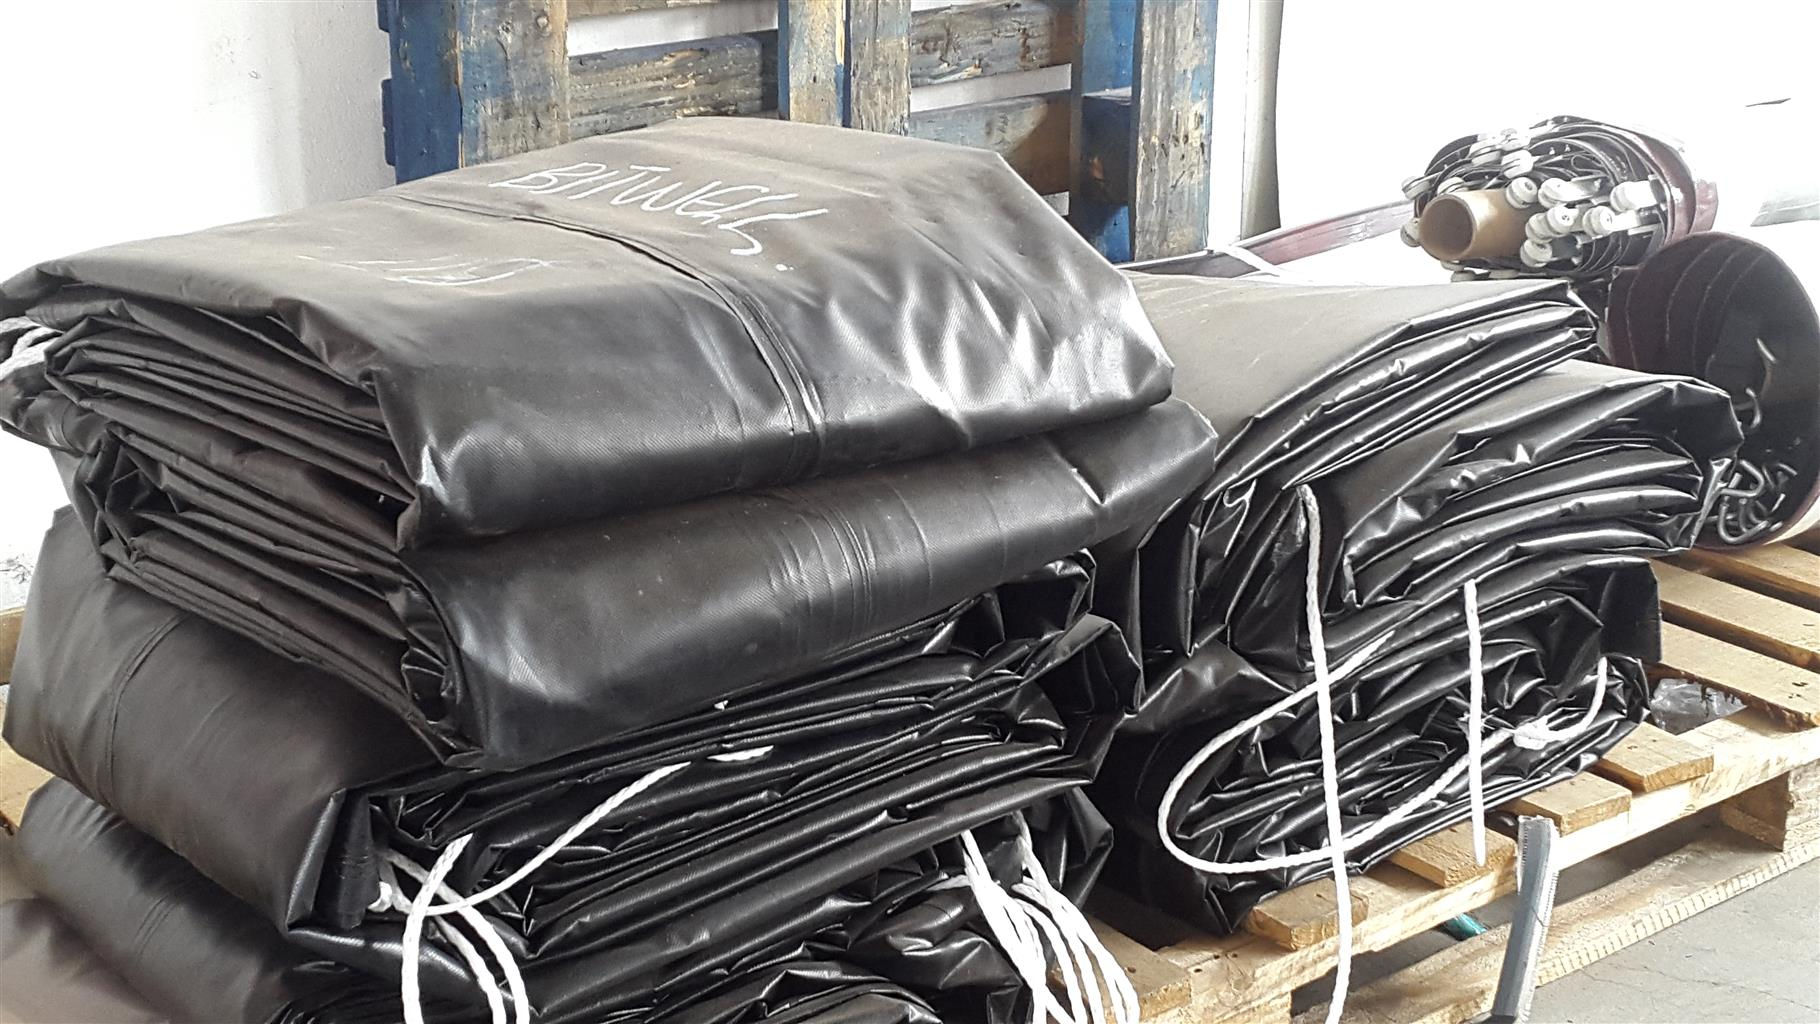 700GSM TRUCK TARPAULINS FOR SALE